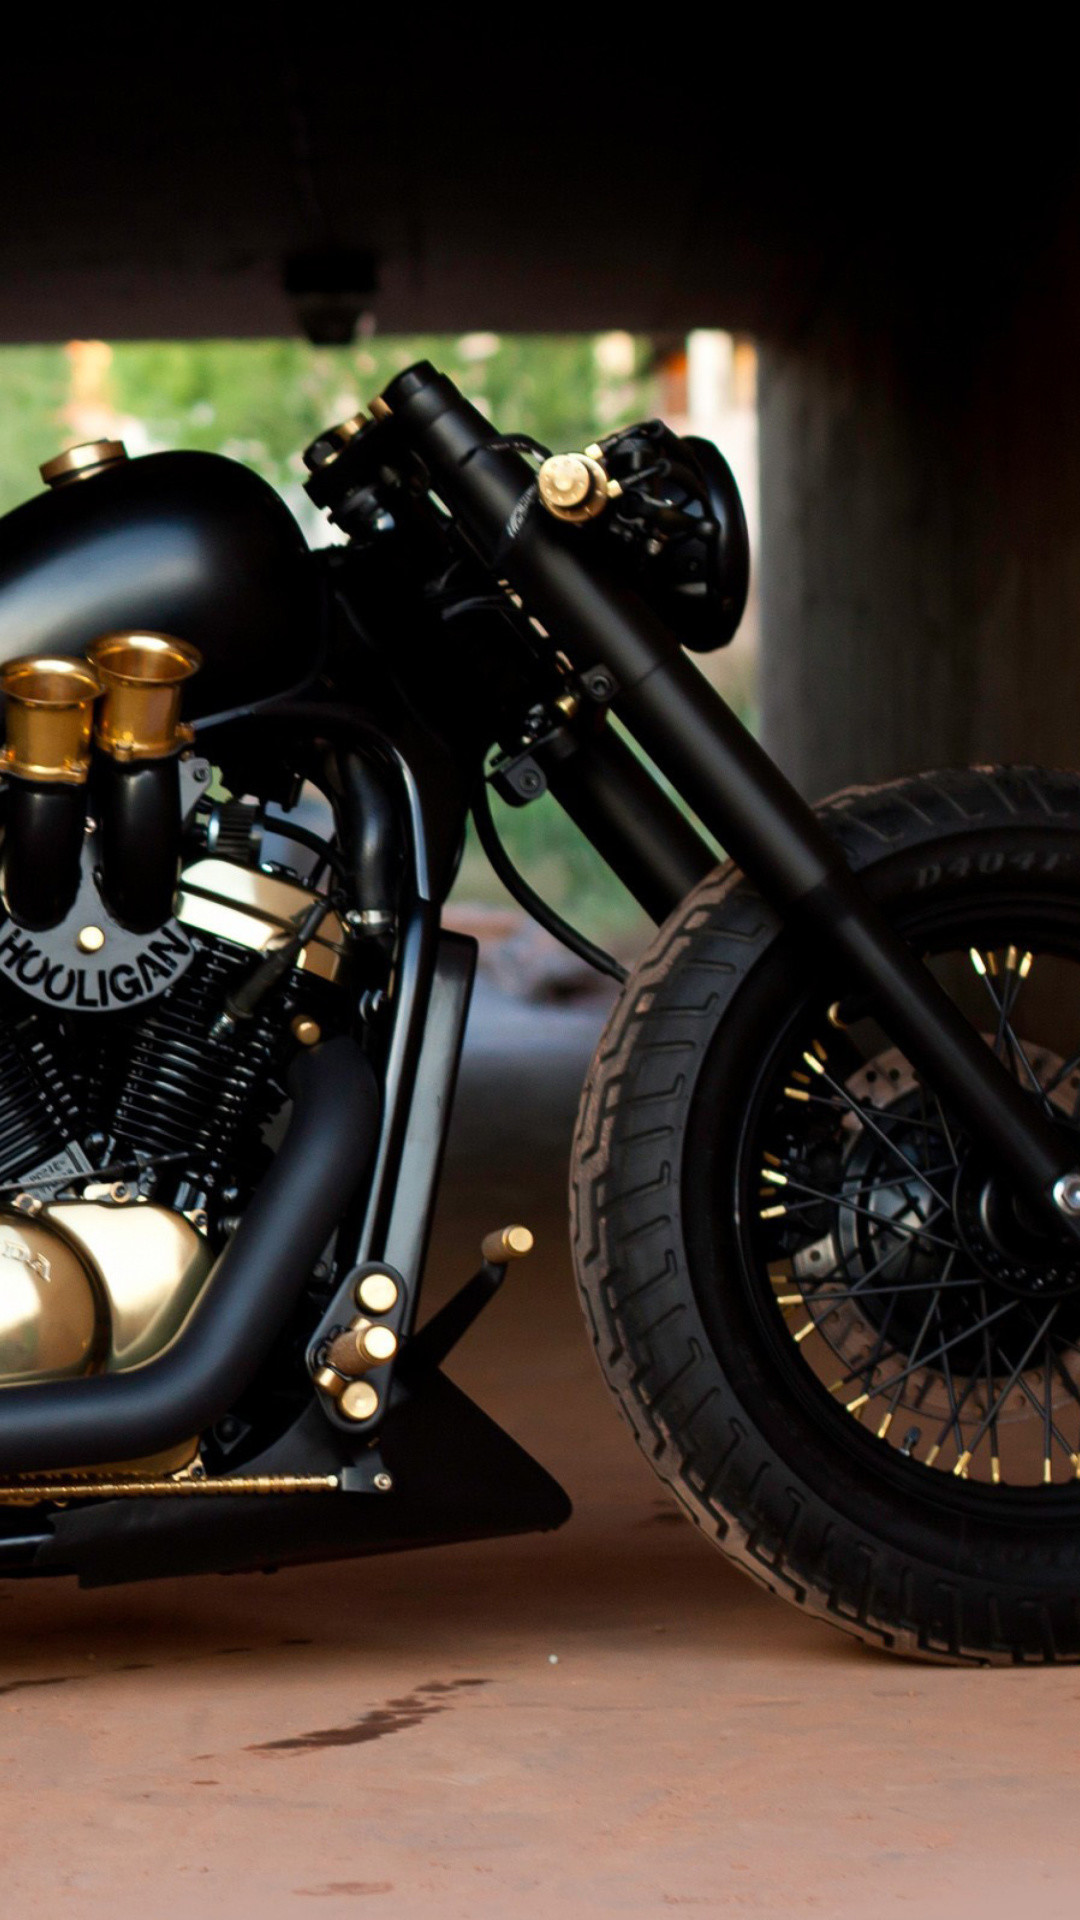 Res: 1080x1920, Bobber Hooligan Bike Wallpaper for iPhonePlus